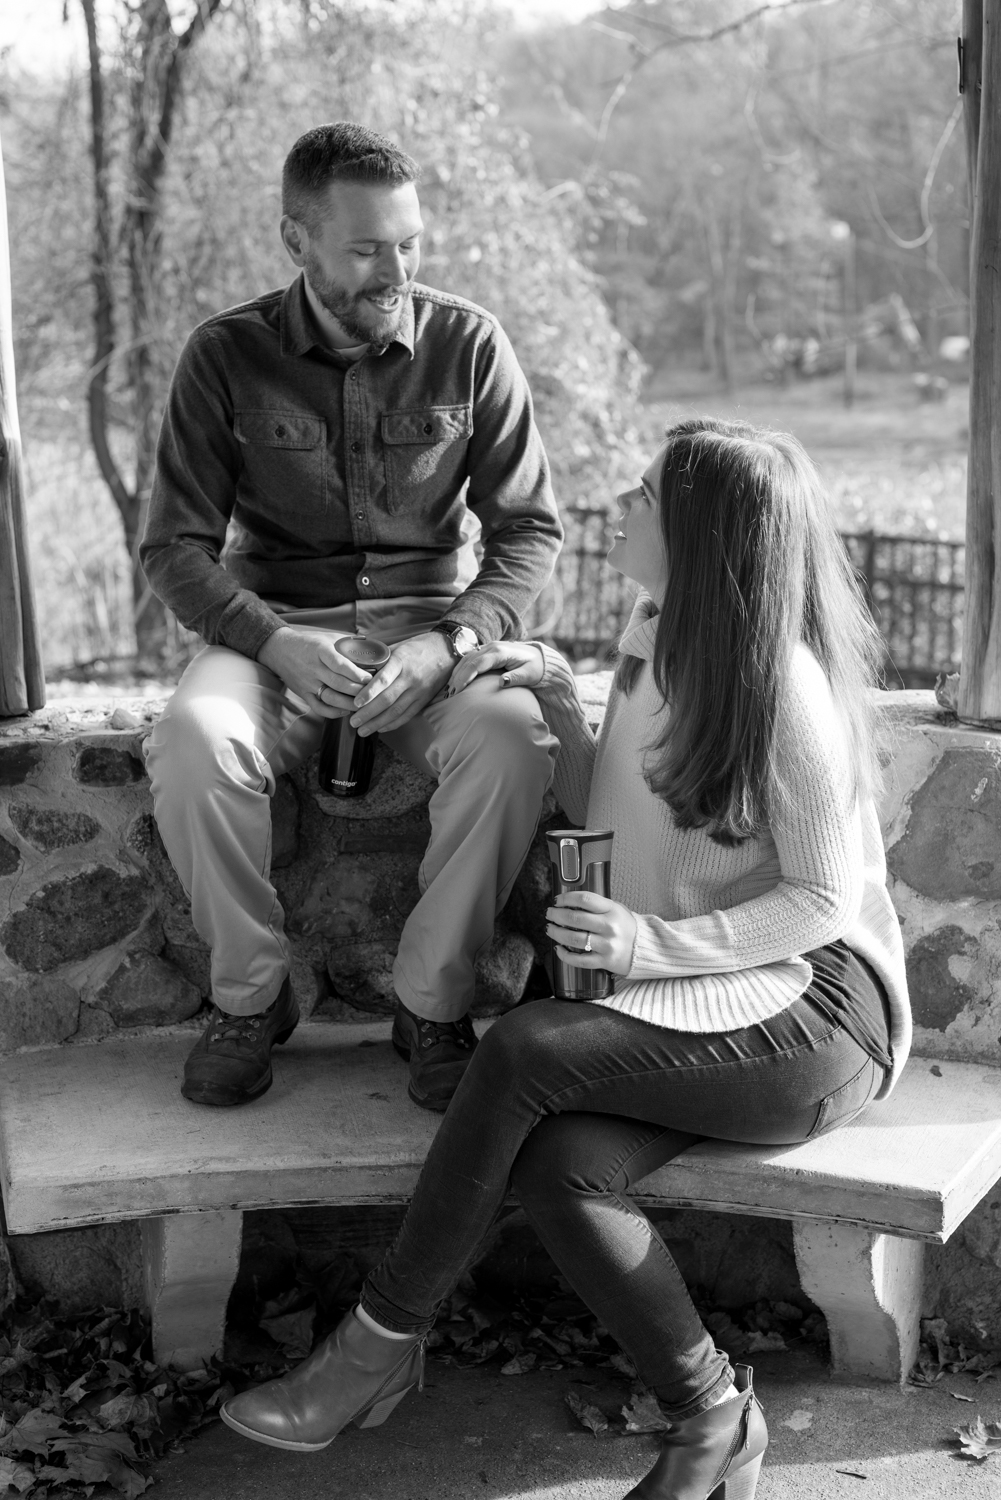 Amy+Brian- Garret Mountain Engagement Session- Fall Nature- Film Photography-New Jersey- Olivia Christina Photo-28.JPG